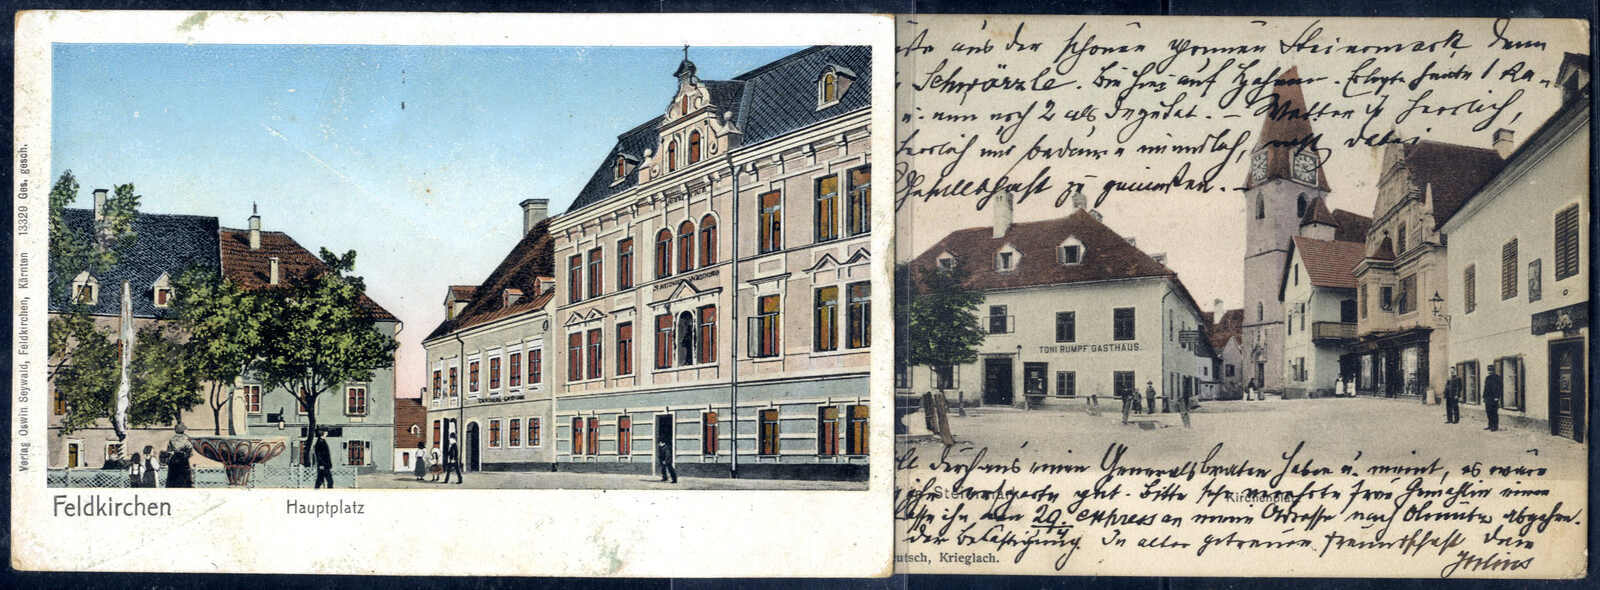 Lot 4122 - Lots and Collections Lots and Collections Picture Postcards Europe -  Viennafil Auktionen Auction #66 Worldwide Mail Auction: Italy, Austria, Germany, Europe and Overseas